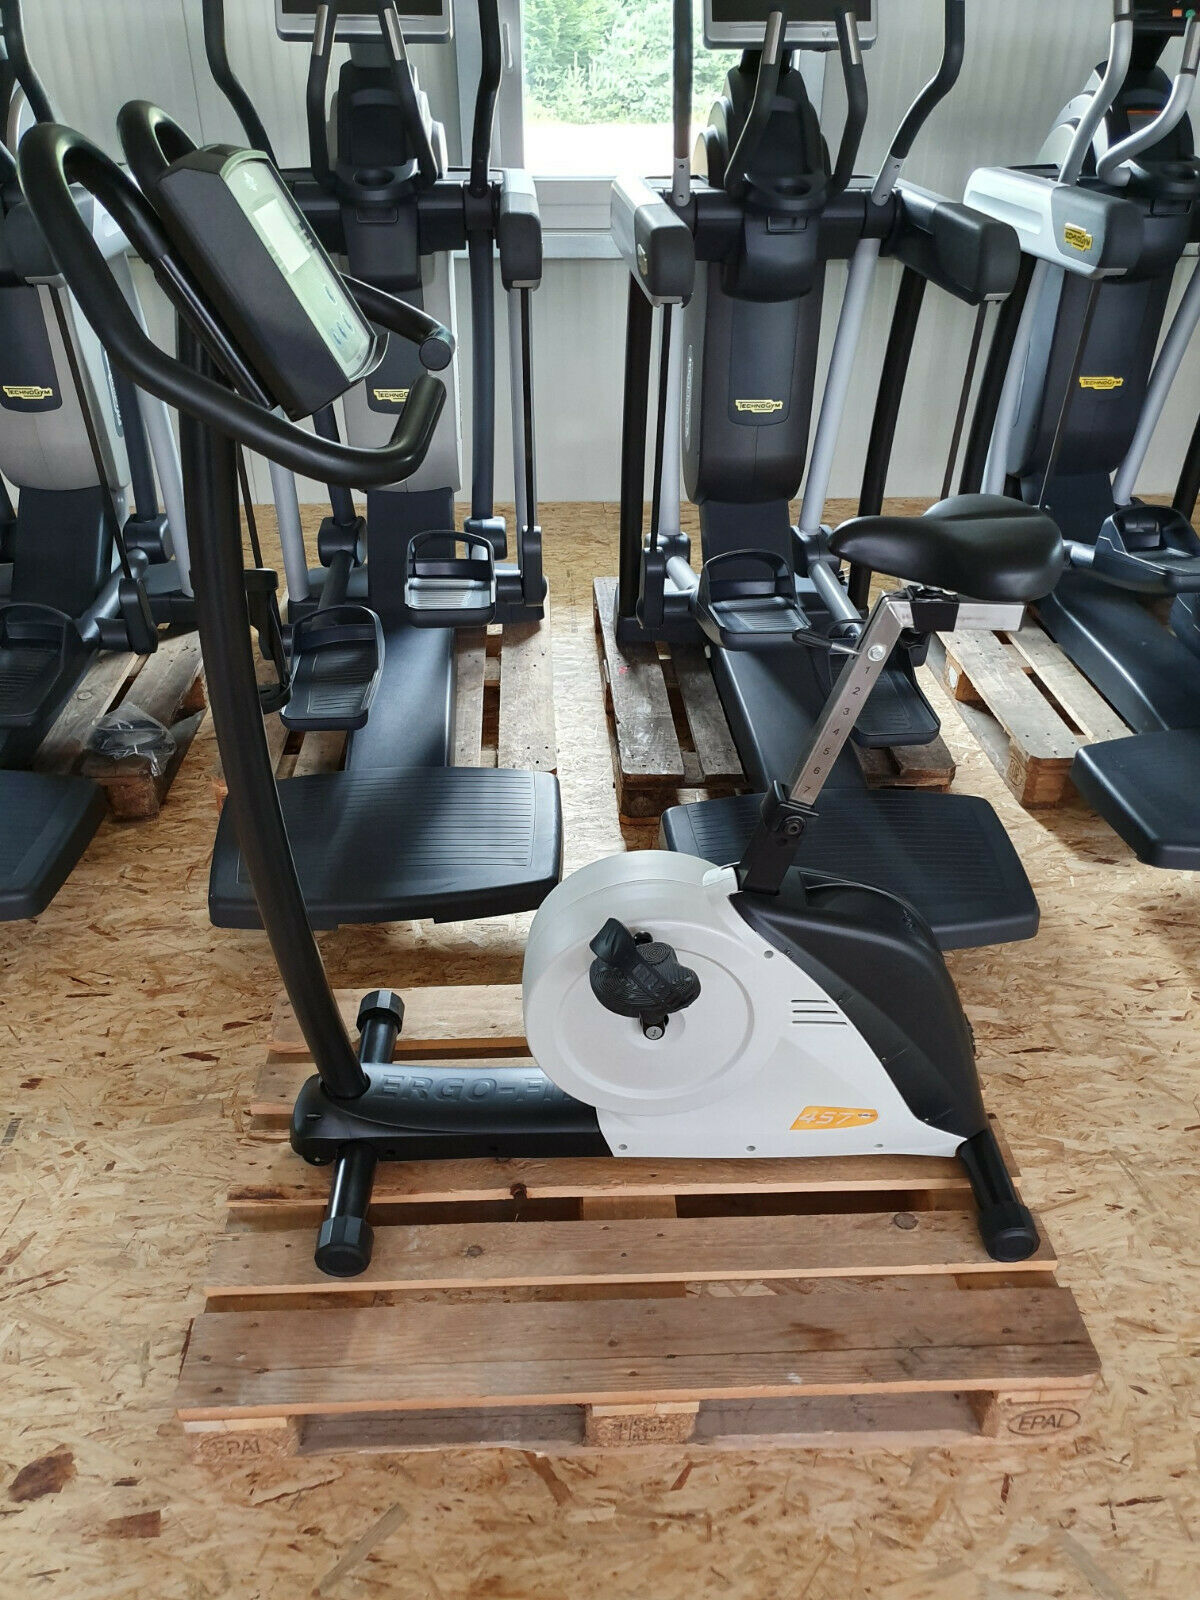 Ergo Fit 457 Upright PWC Test Bike Fahrrad Ergometer Fitness Studio Gym